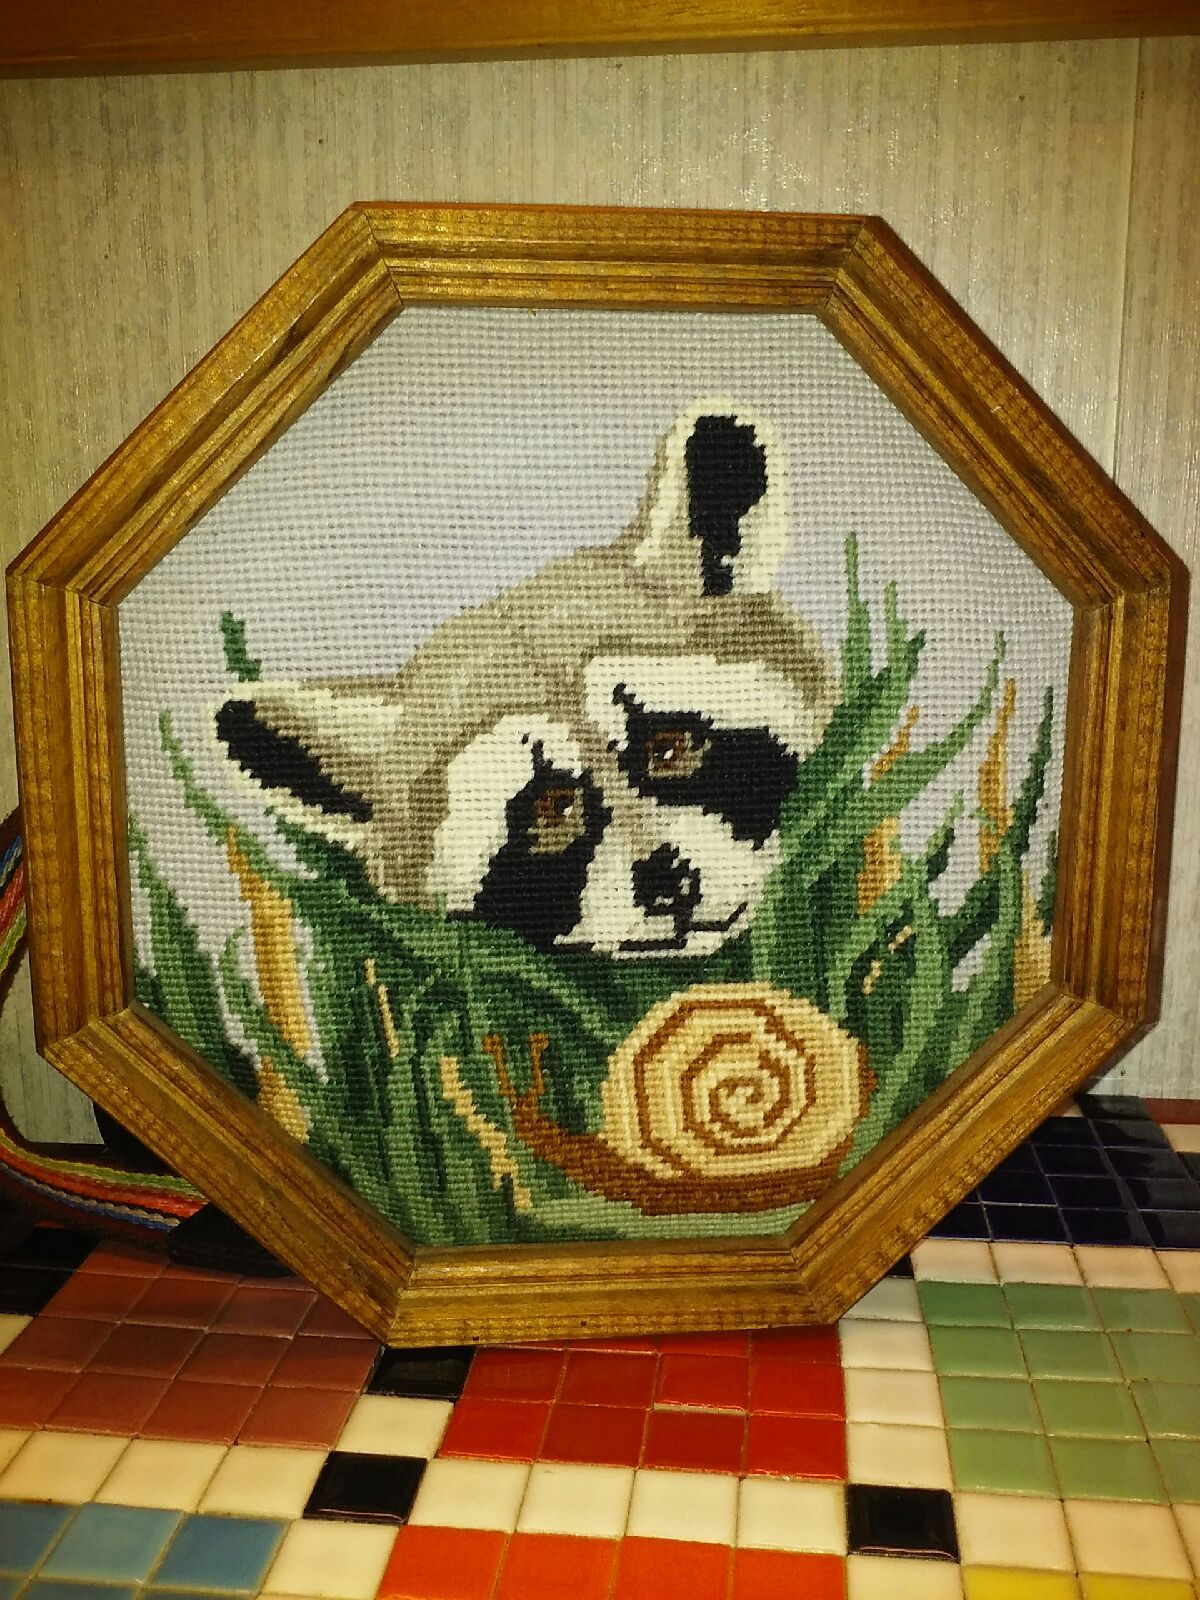 Hexagonal Racoon and Snail Stitch Frame